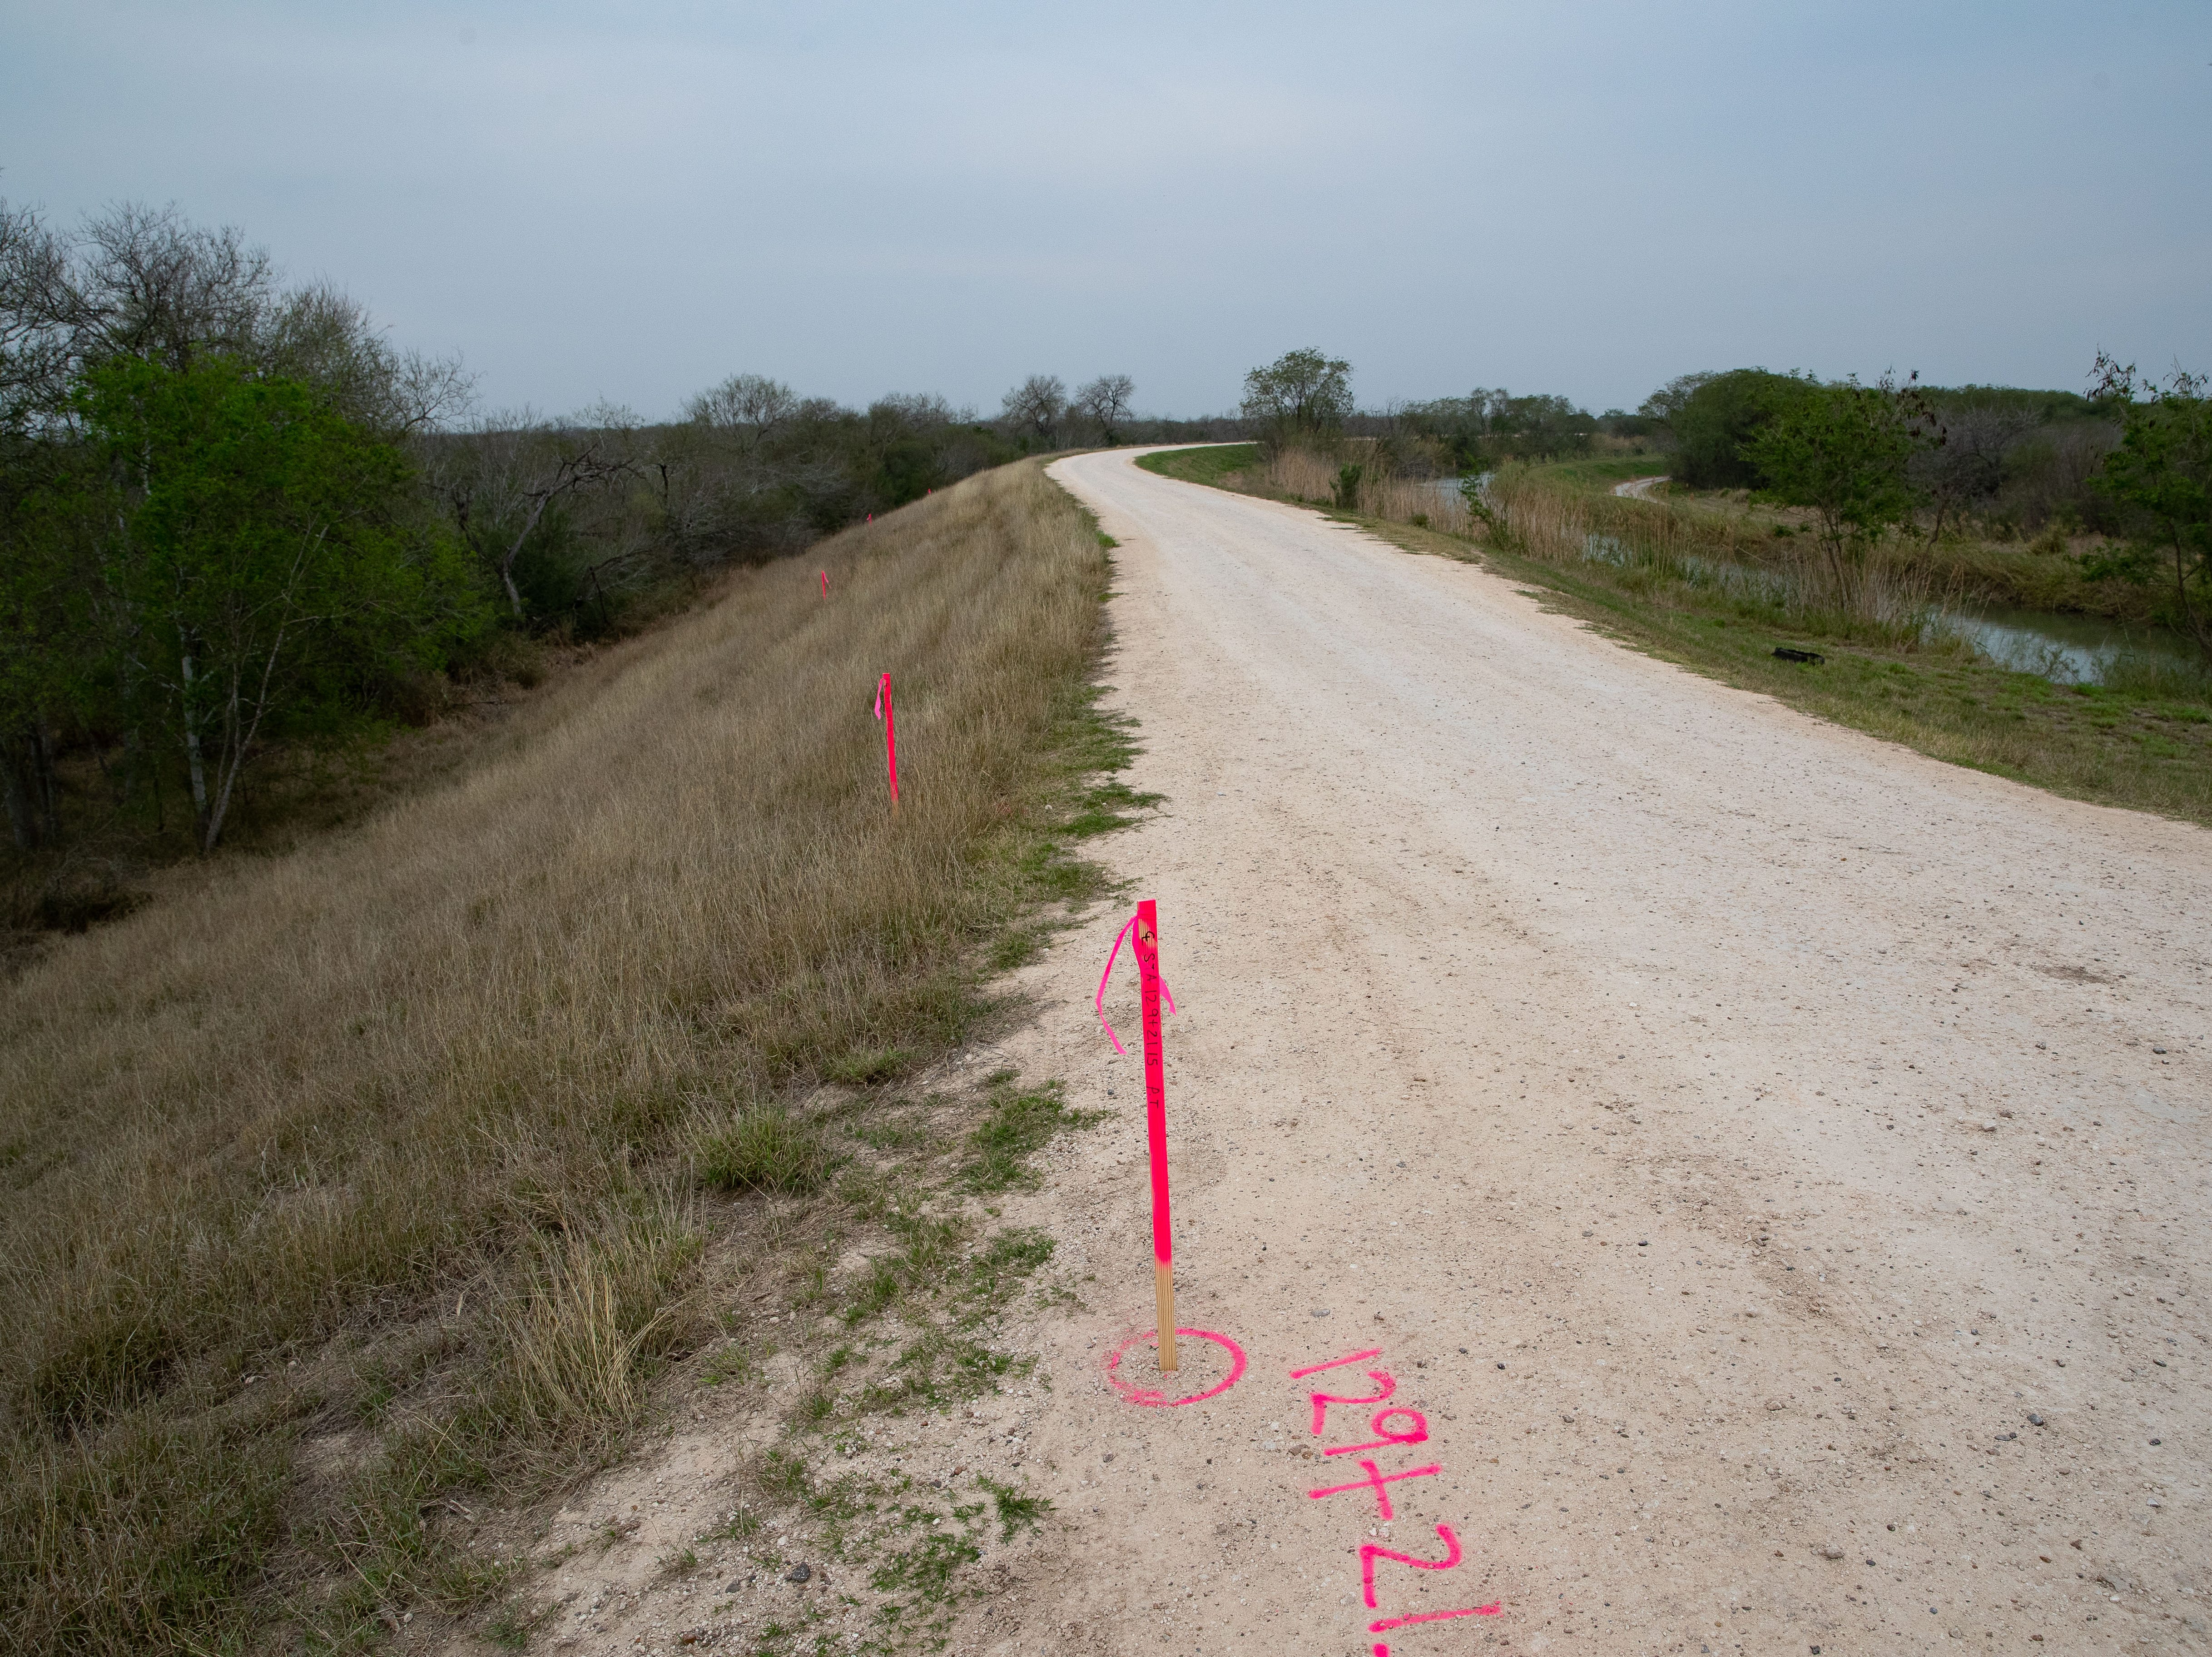 Markers for planned construction on fencing and other barriers line the side of a road in Mission, Texas.